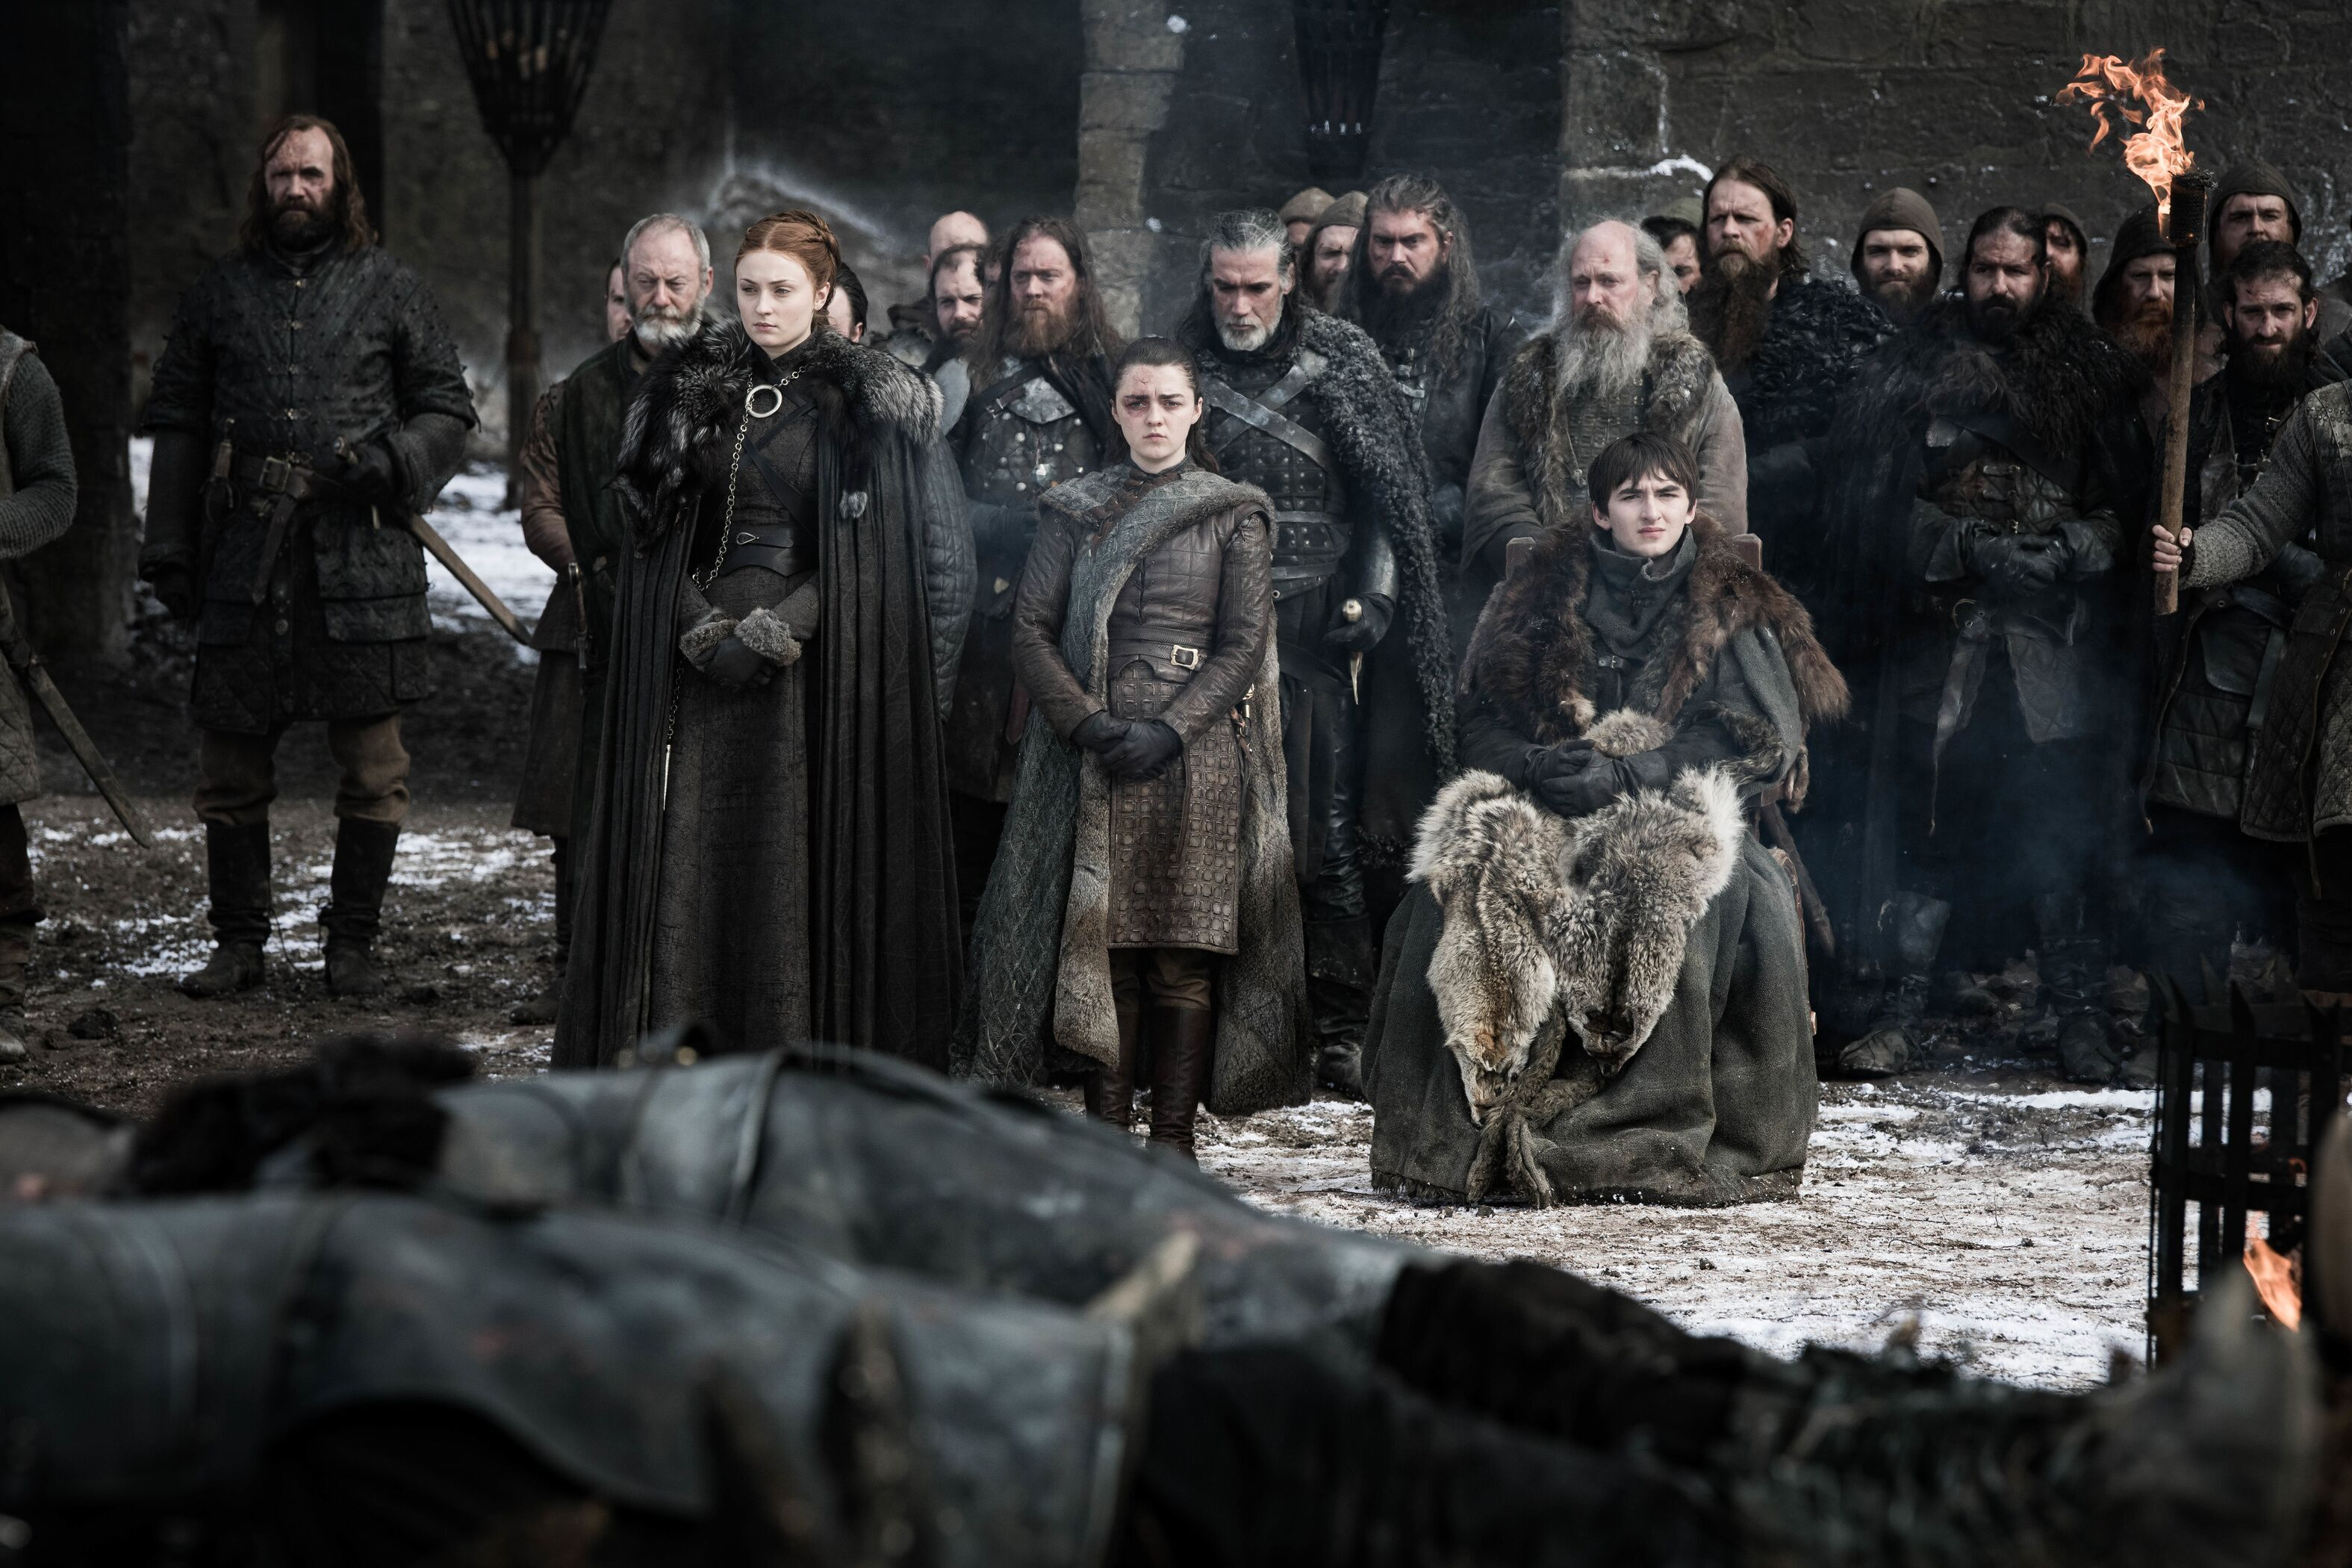 The Stark kids discuss growing up on Game of Thrones